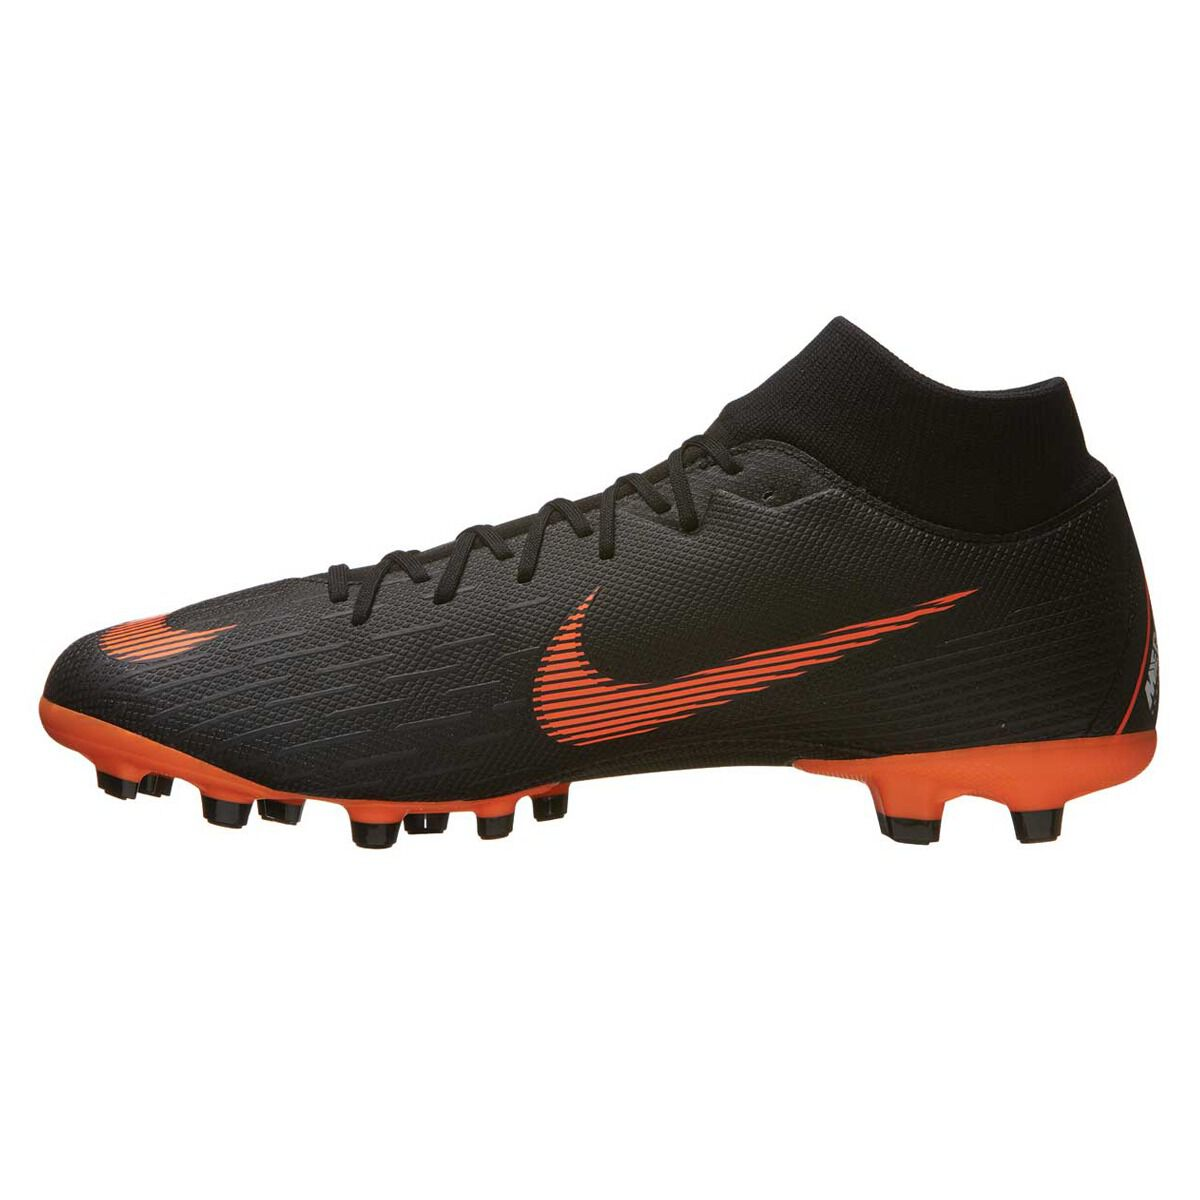 742c3cef71299 ... closeout nike mercurial superfly 6 academy mg mens football boots black  orange us 7 adult cdd31